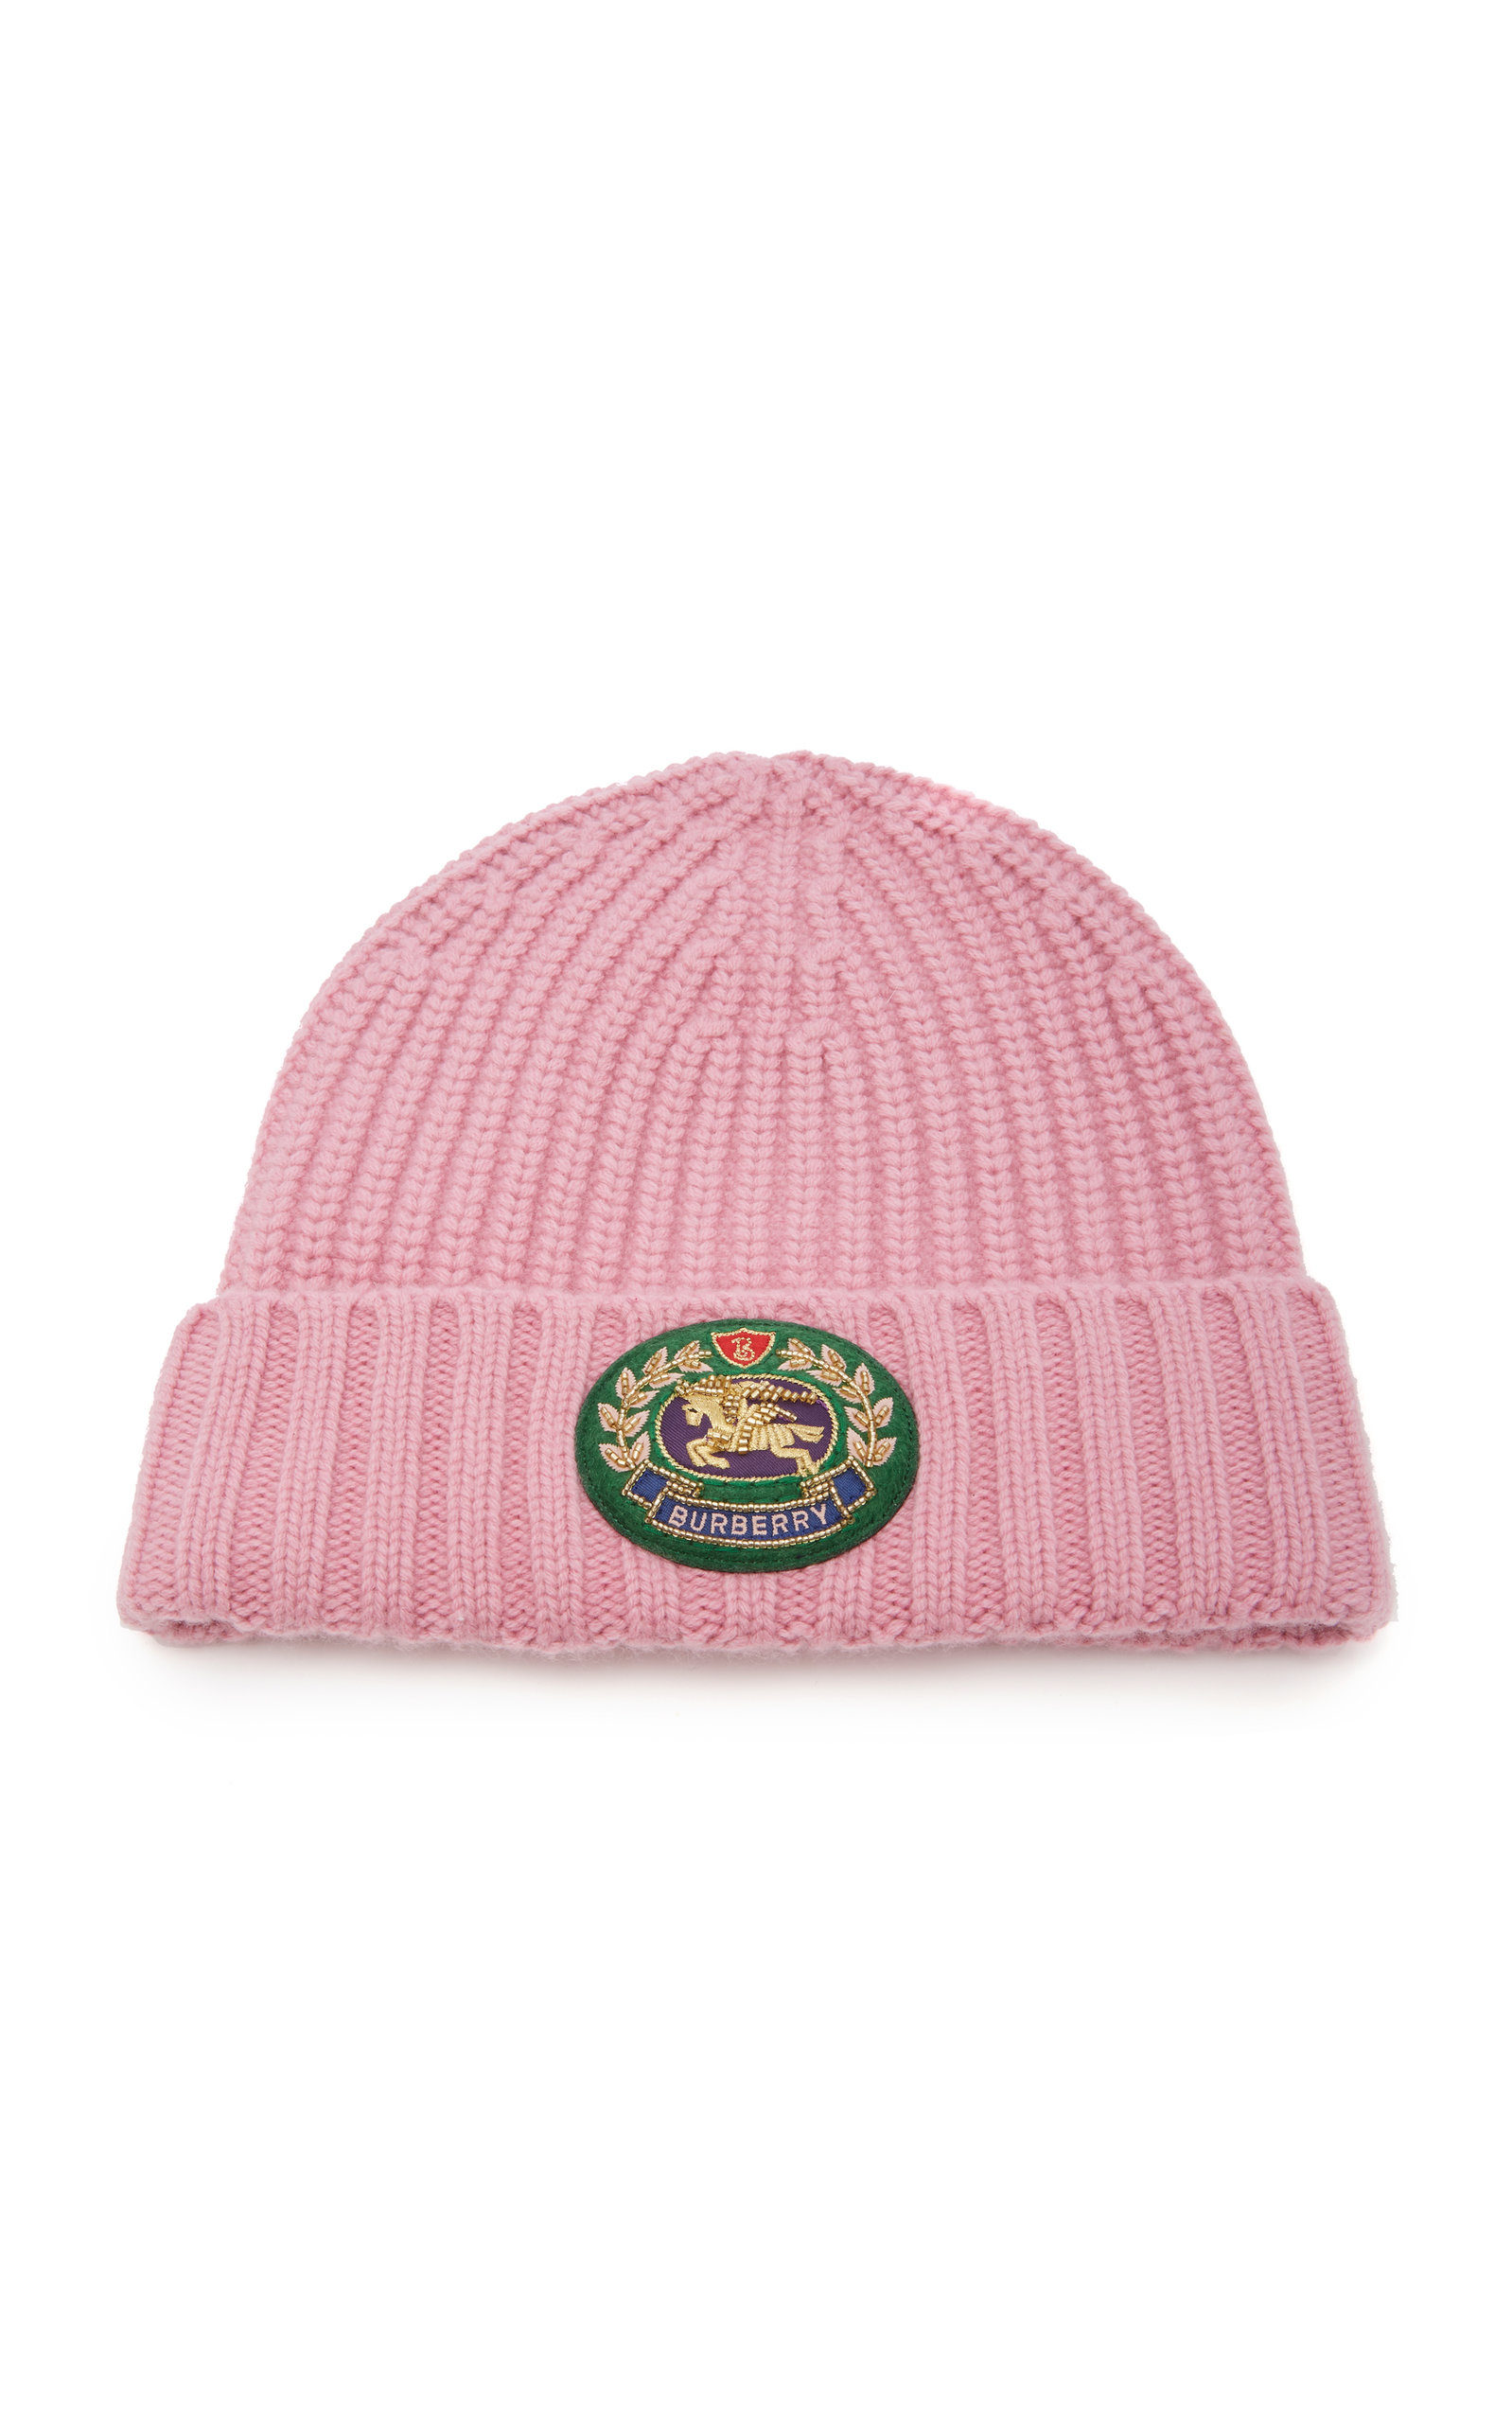 be0ca932dcf BurberryEmbroidered Wool and Cashmere-Blend Beanie. CLOSE. Loading